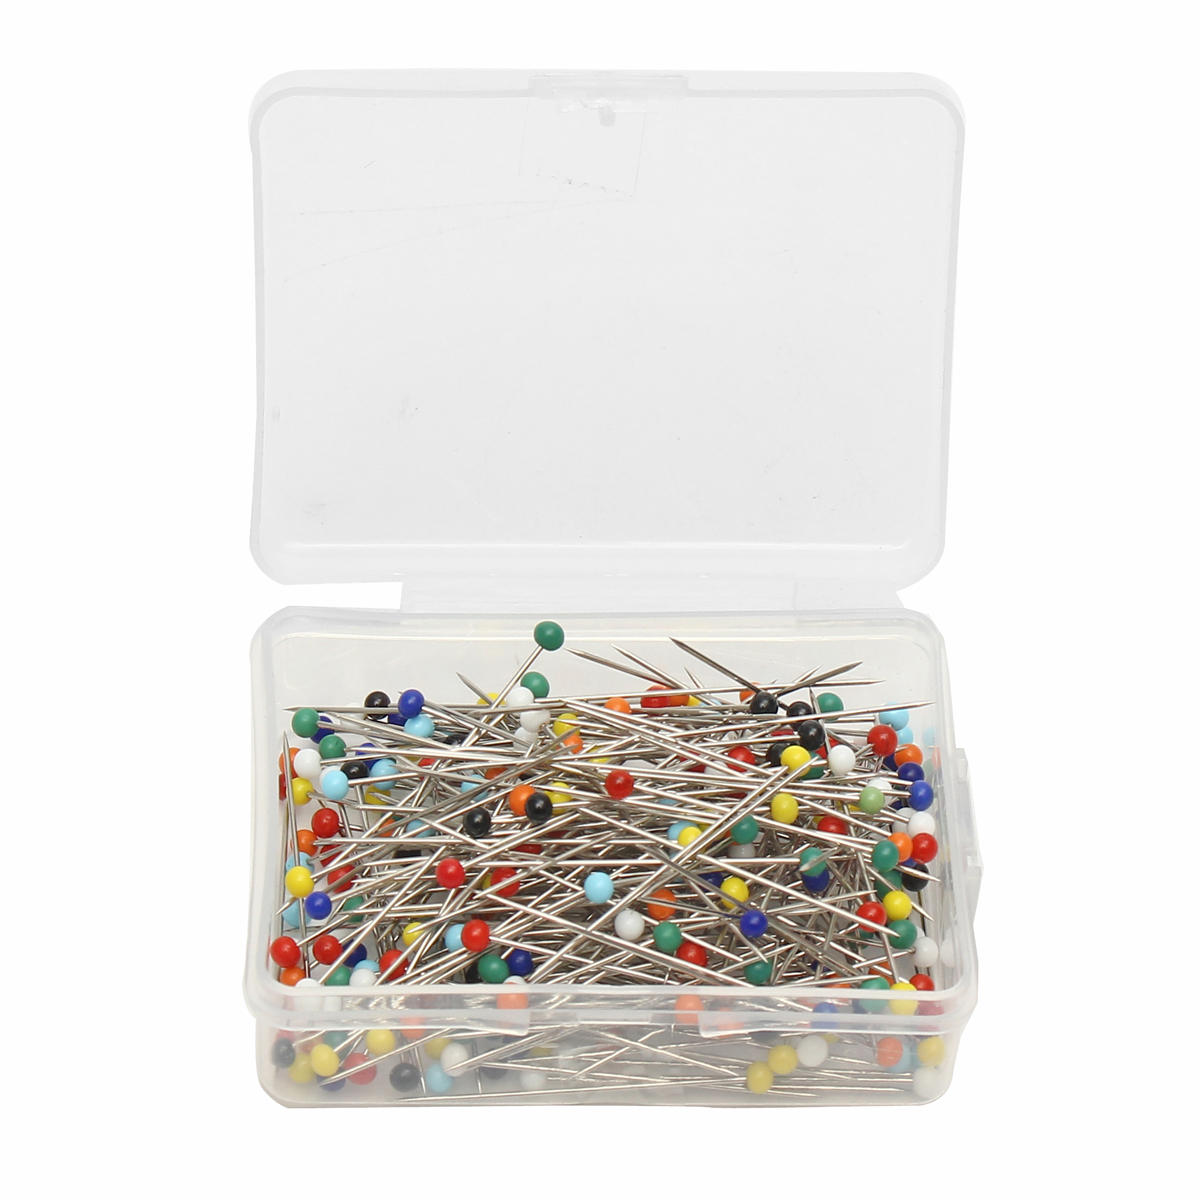 250pcs glass pearlized head pins multicolor ball sewing pins for diy crafts jewelry dressmaking